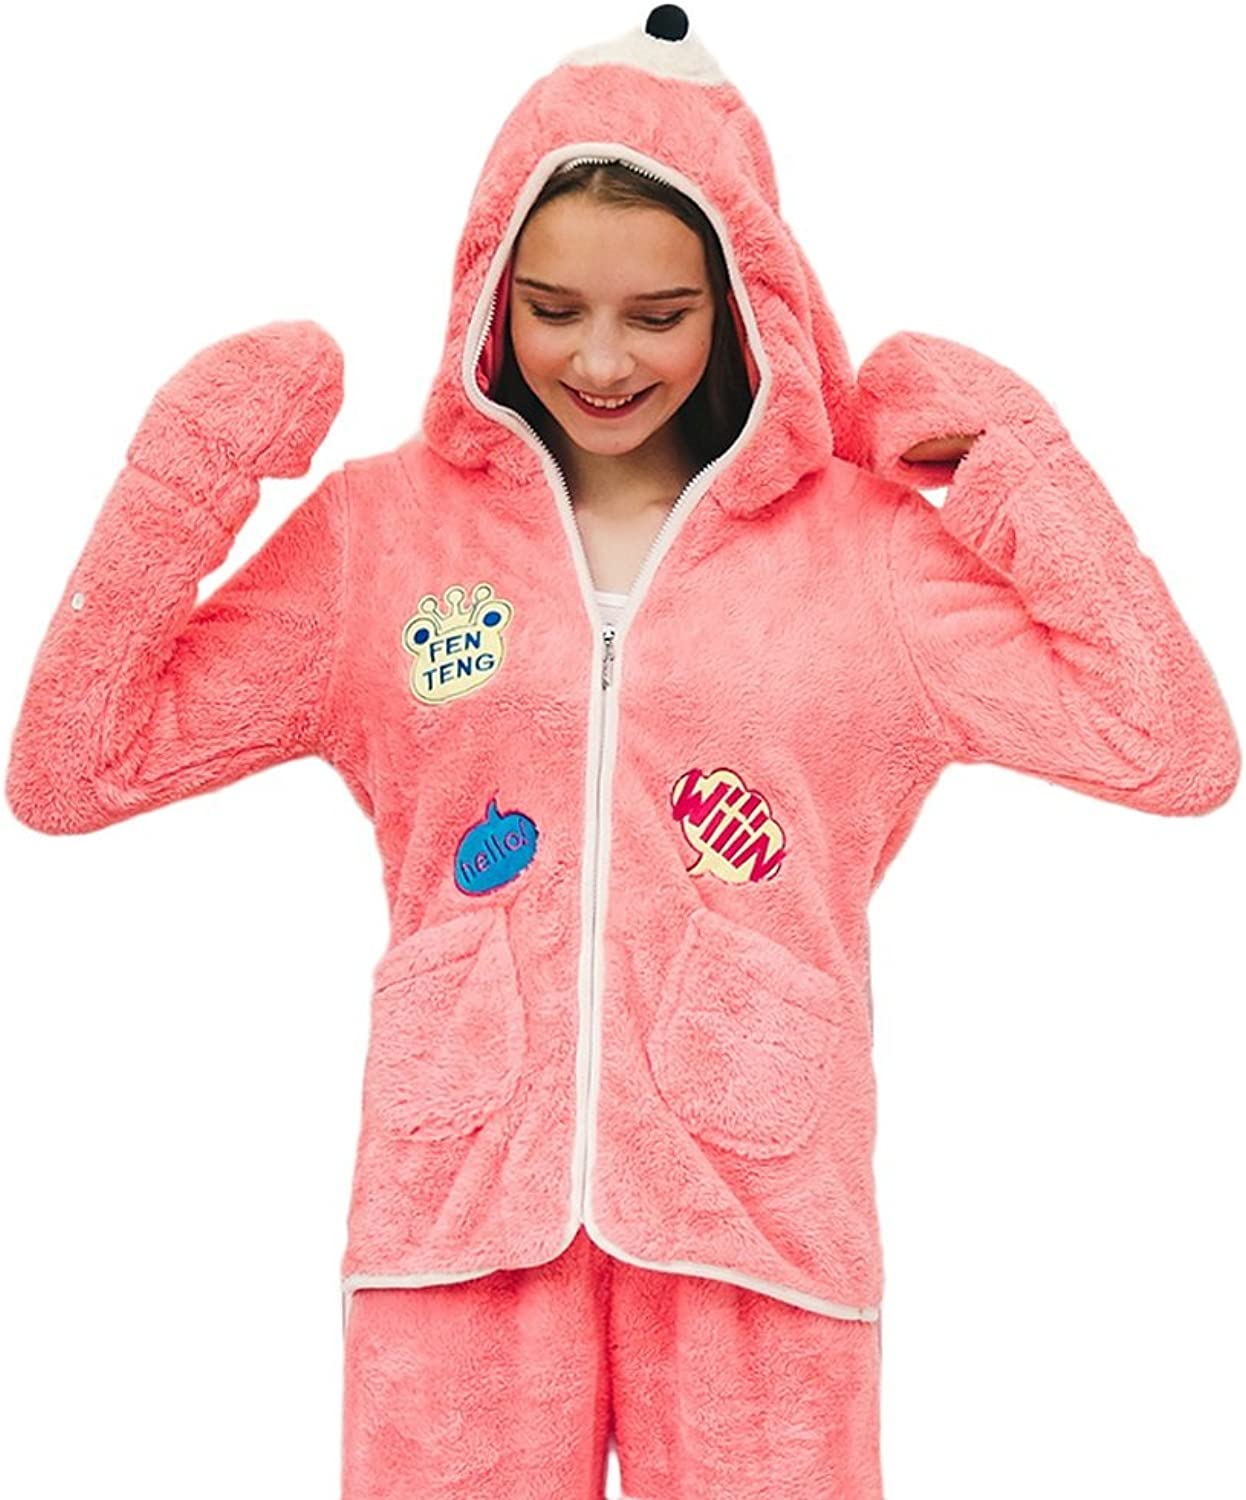 Girl Winter Cute Cartoon Hooded Longsleeved Pajamas Suit Fashion Sweet And Comfortable Zipper Keep Warm Home Clothing ( color   Pink , Size   L )